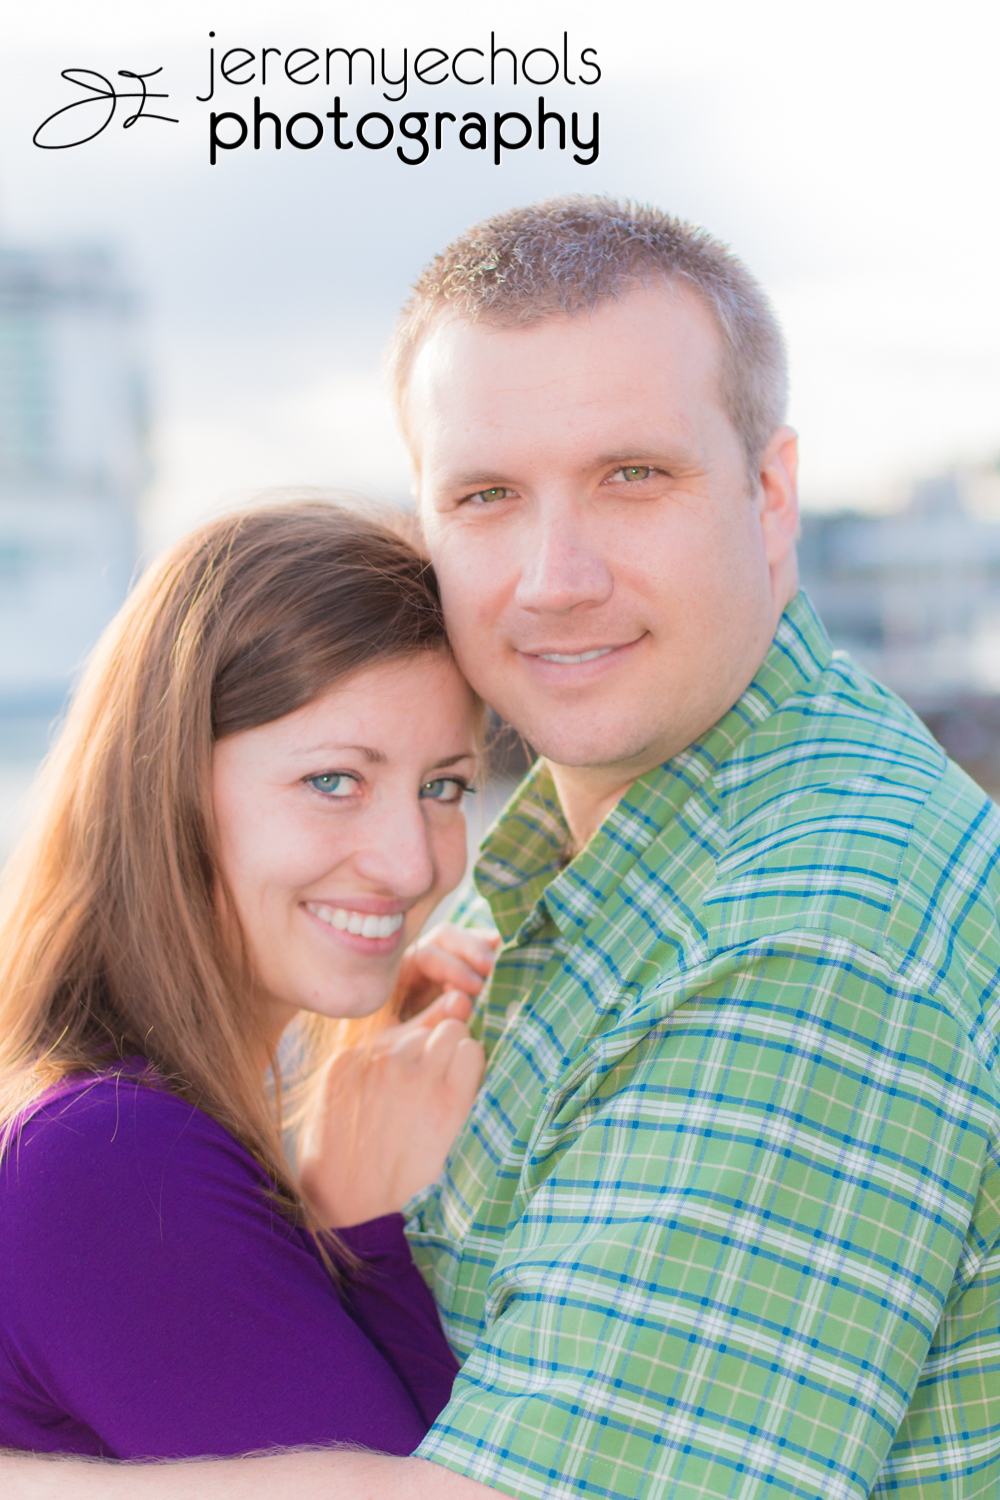 Alan-Amberlyn-Seattle-Engagement-Photography-153.jpg